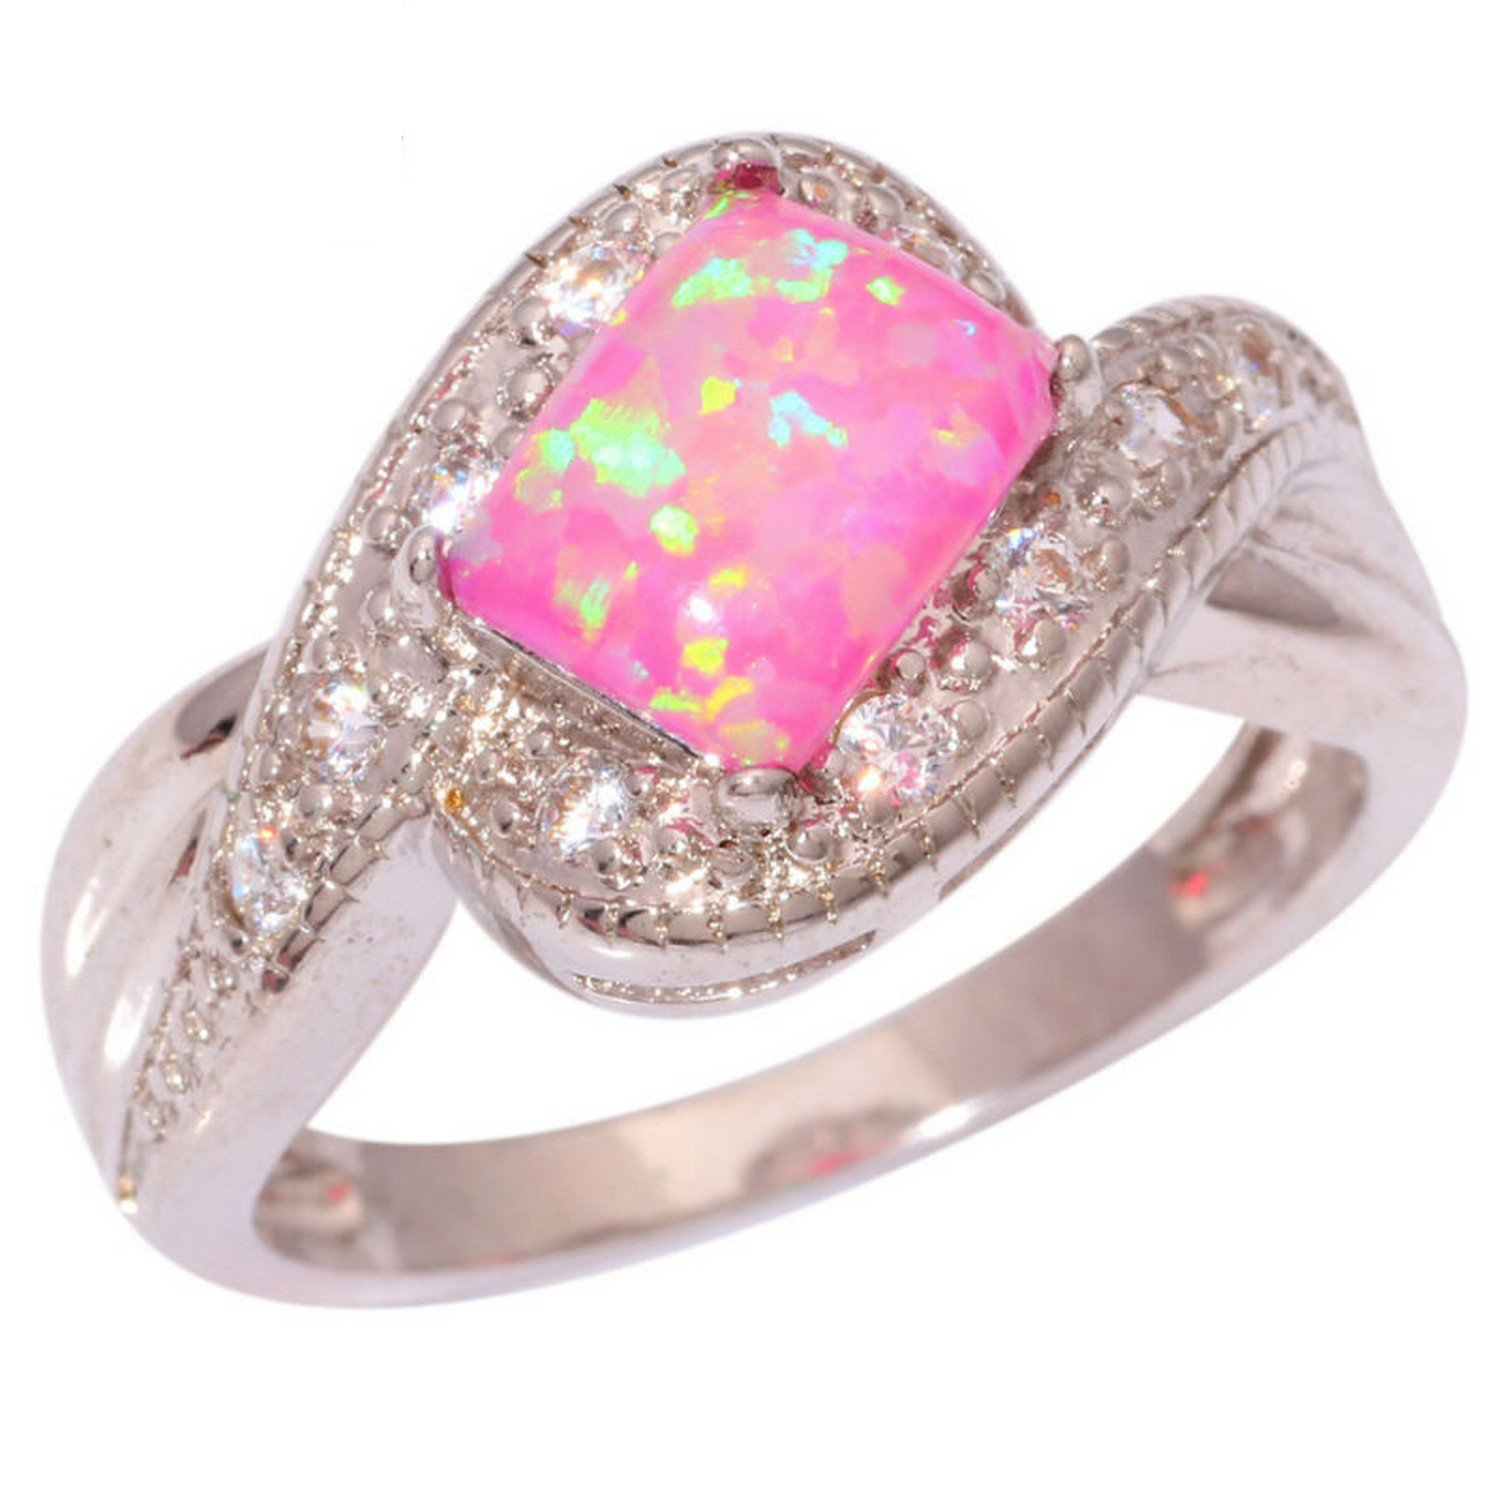 Amazon.com: Cherryn Created Pink Opal Cubic Zirconia promise rings ...